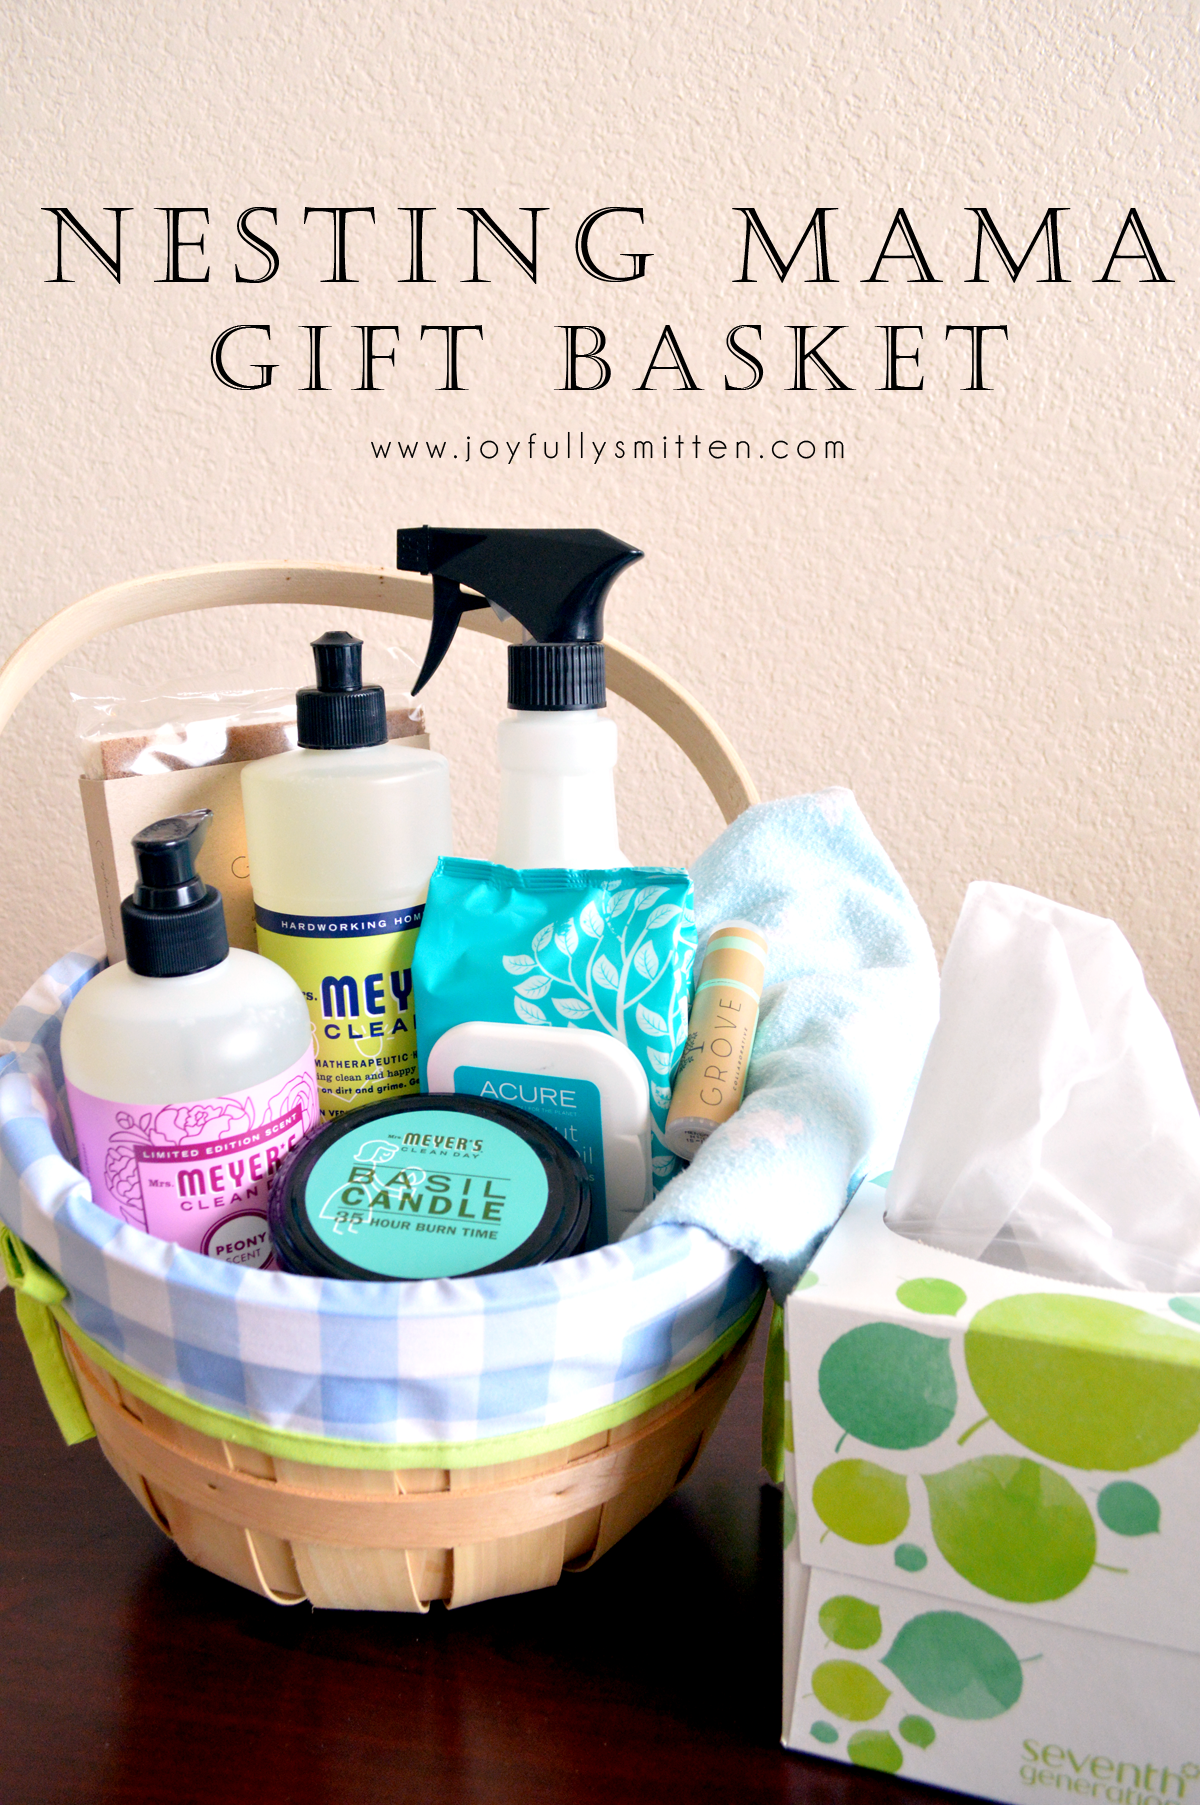 Nesting Gift Basket for Expecting Mothers! A super sweet gesture filled with items for nesting, for her hospital bag and just to make her feel special.